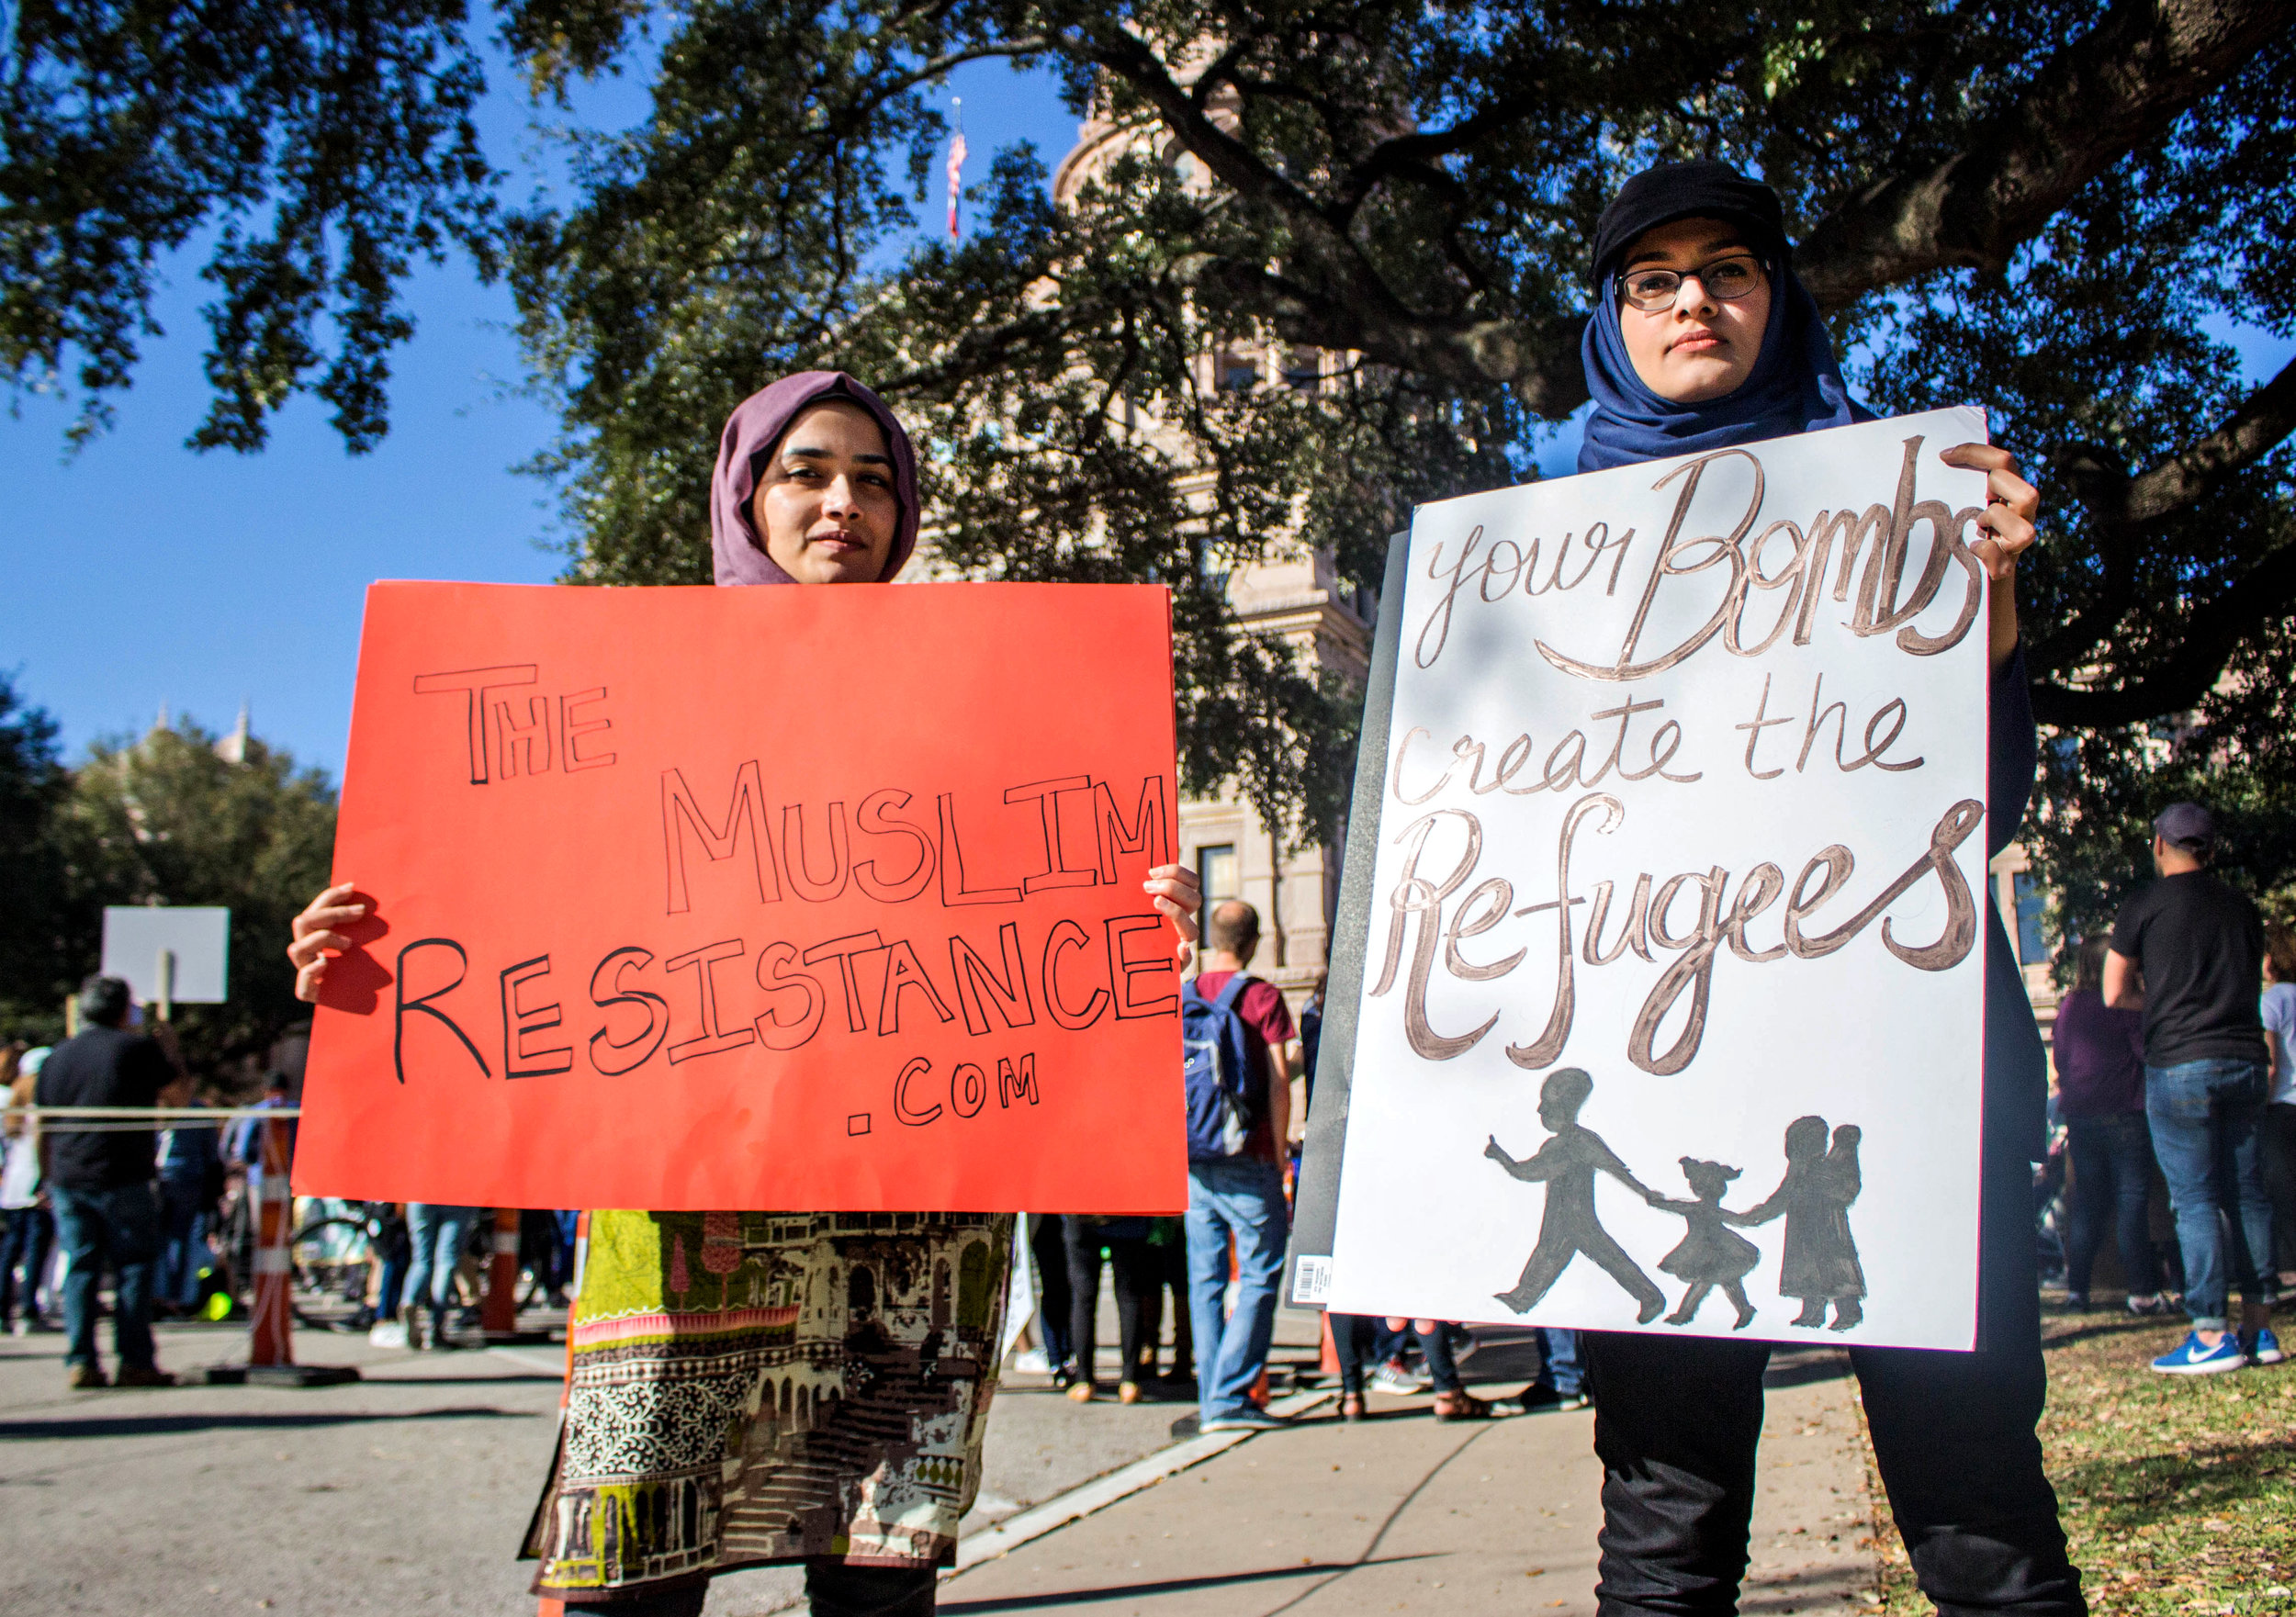 """Zainab Haider, right, holds a sign that says, """"Your bombs create the refugees"""" and Tasbiha Batool, left, holds a sign that says, """"The Muslim Resistance .com"""" near the Capitol."""